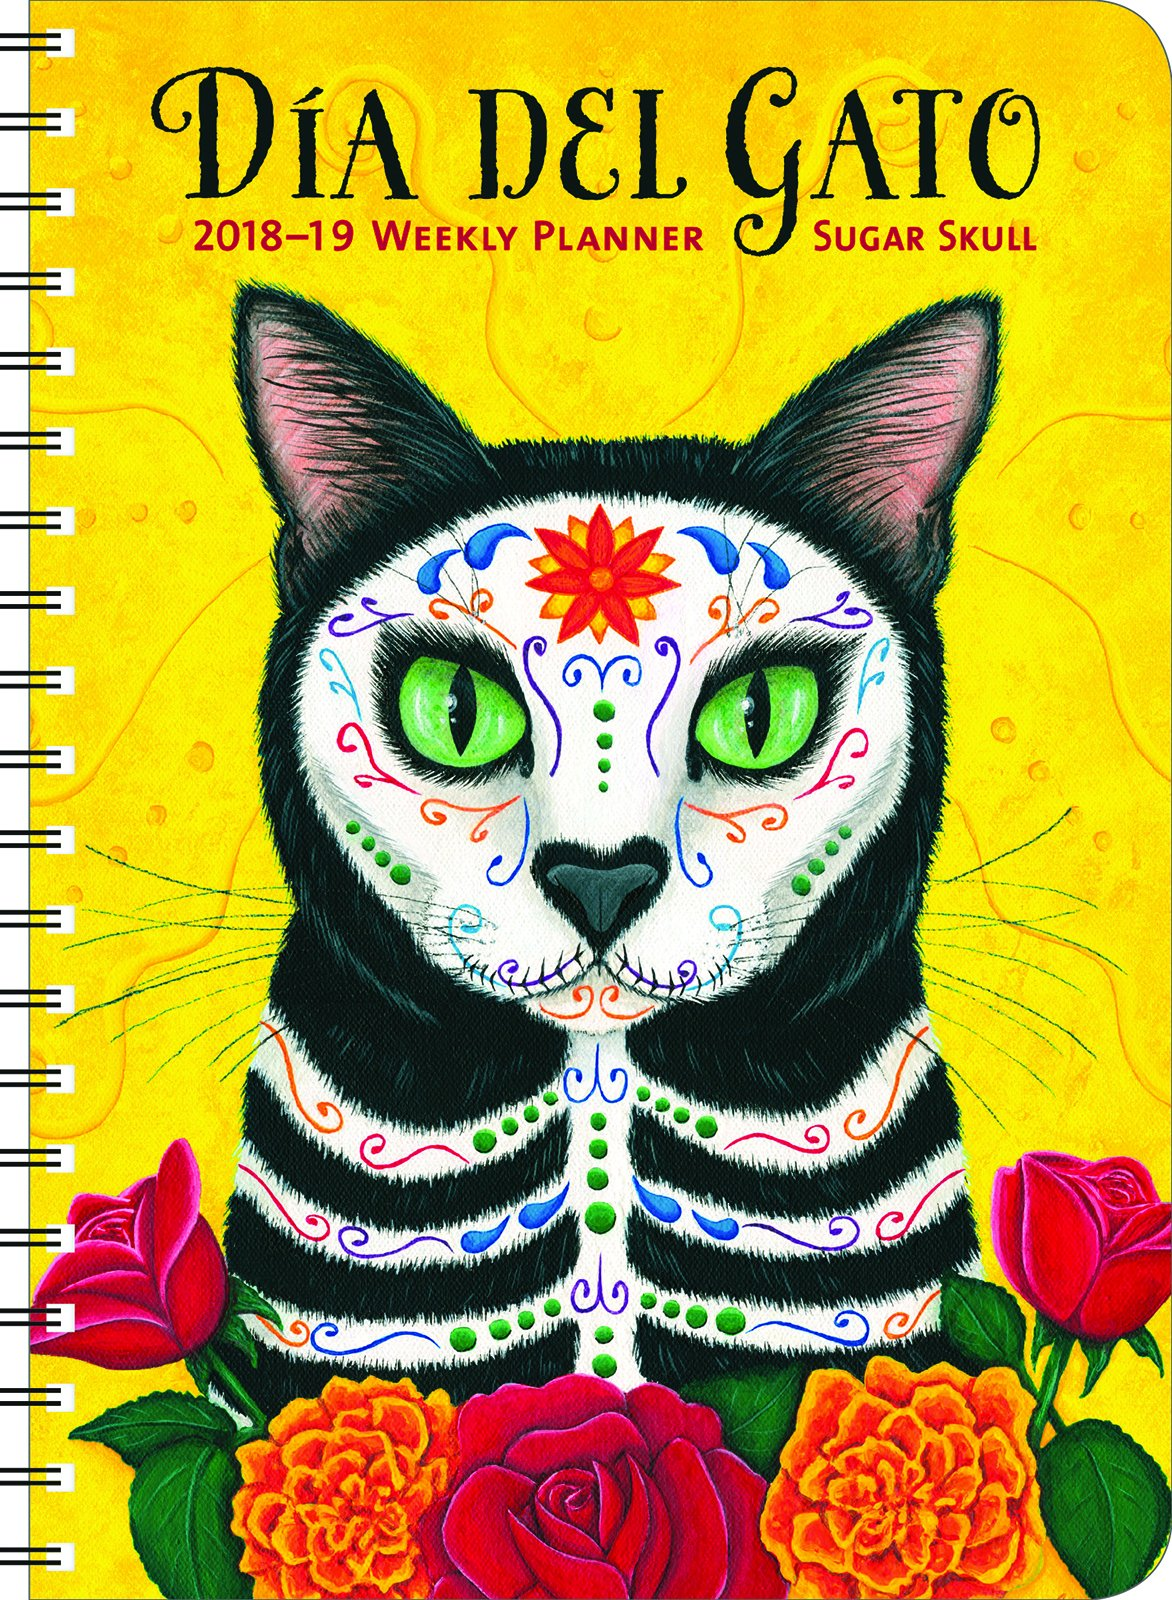 Sugar Skull 2018 - 2019 Weekly Planner: Dia del Gato: Amazon.es ...